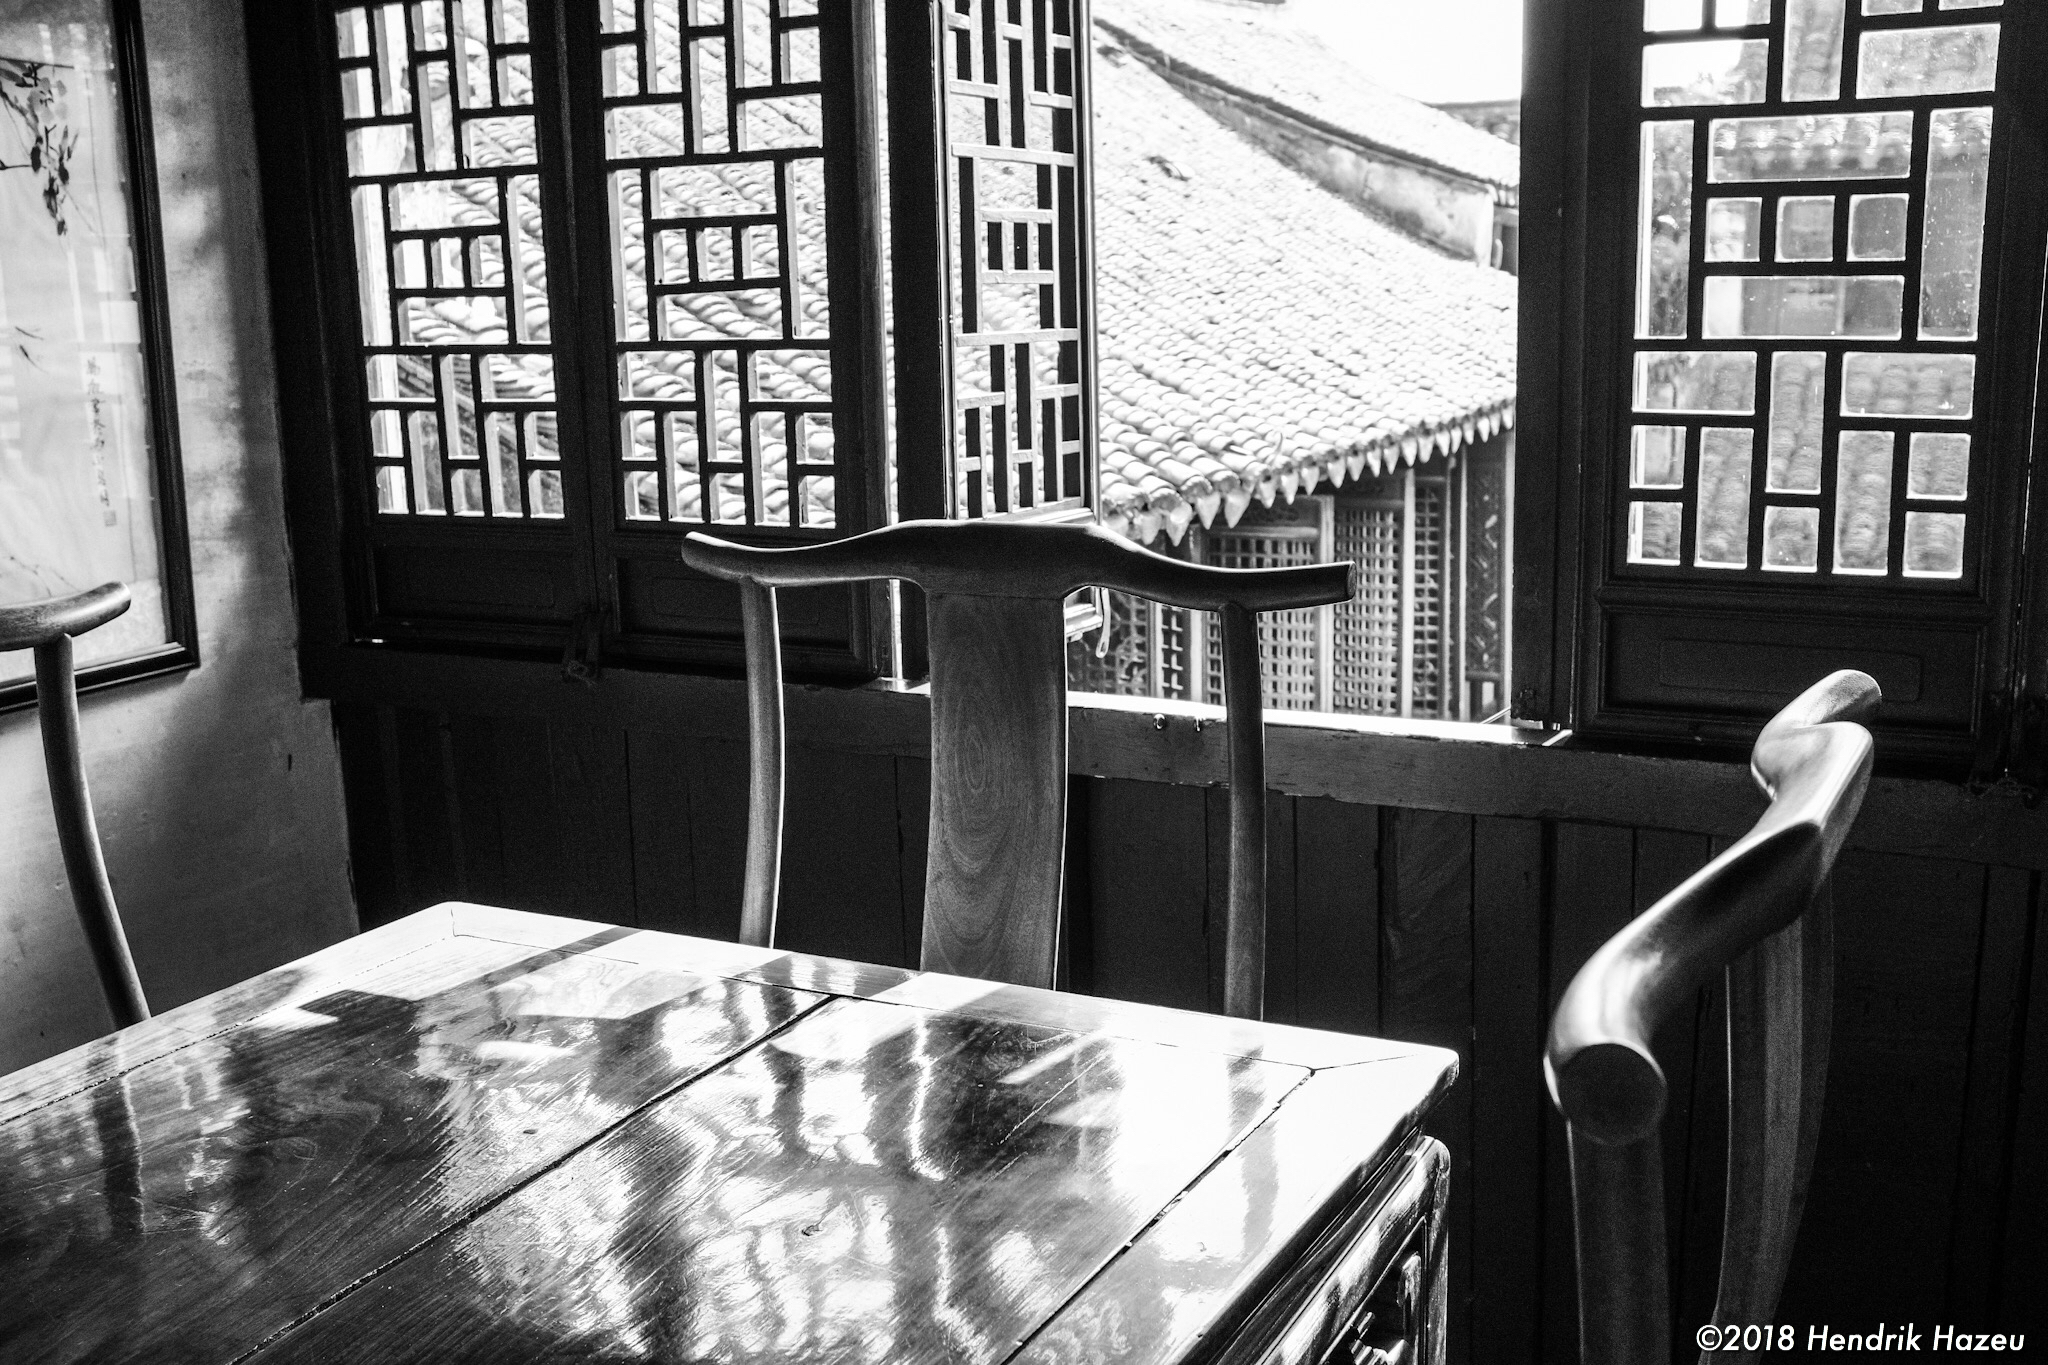 Table by the window, Fuji X100F, 23mm f/2 @f/5.6, 1/75sec ISO400 developed in LR CC mobile